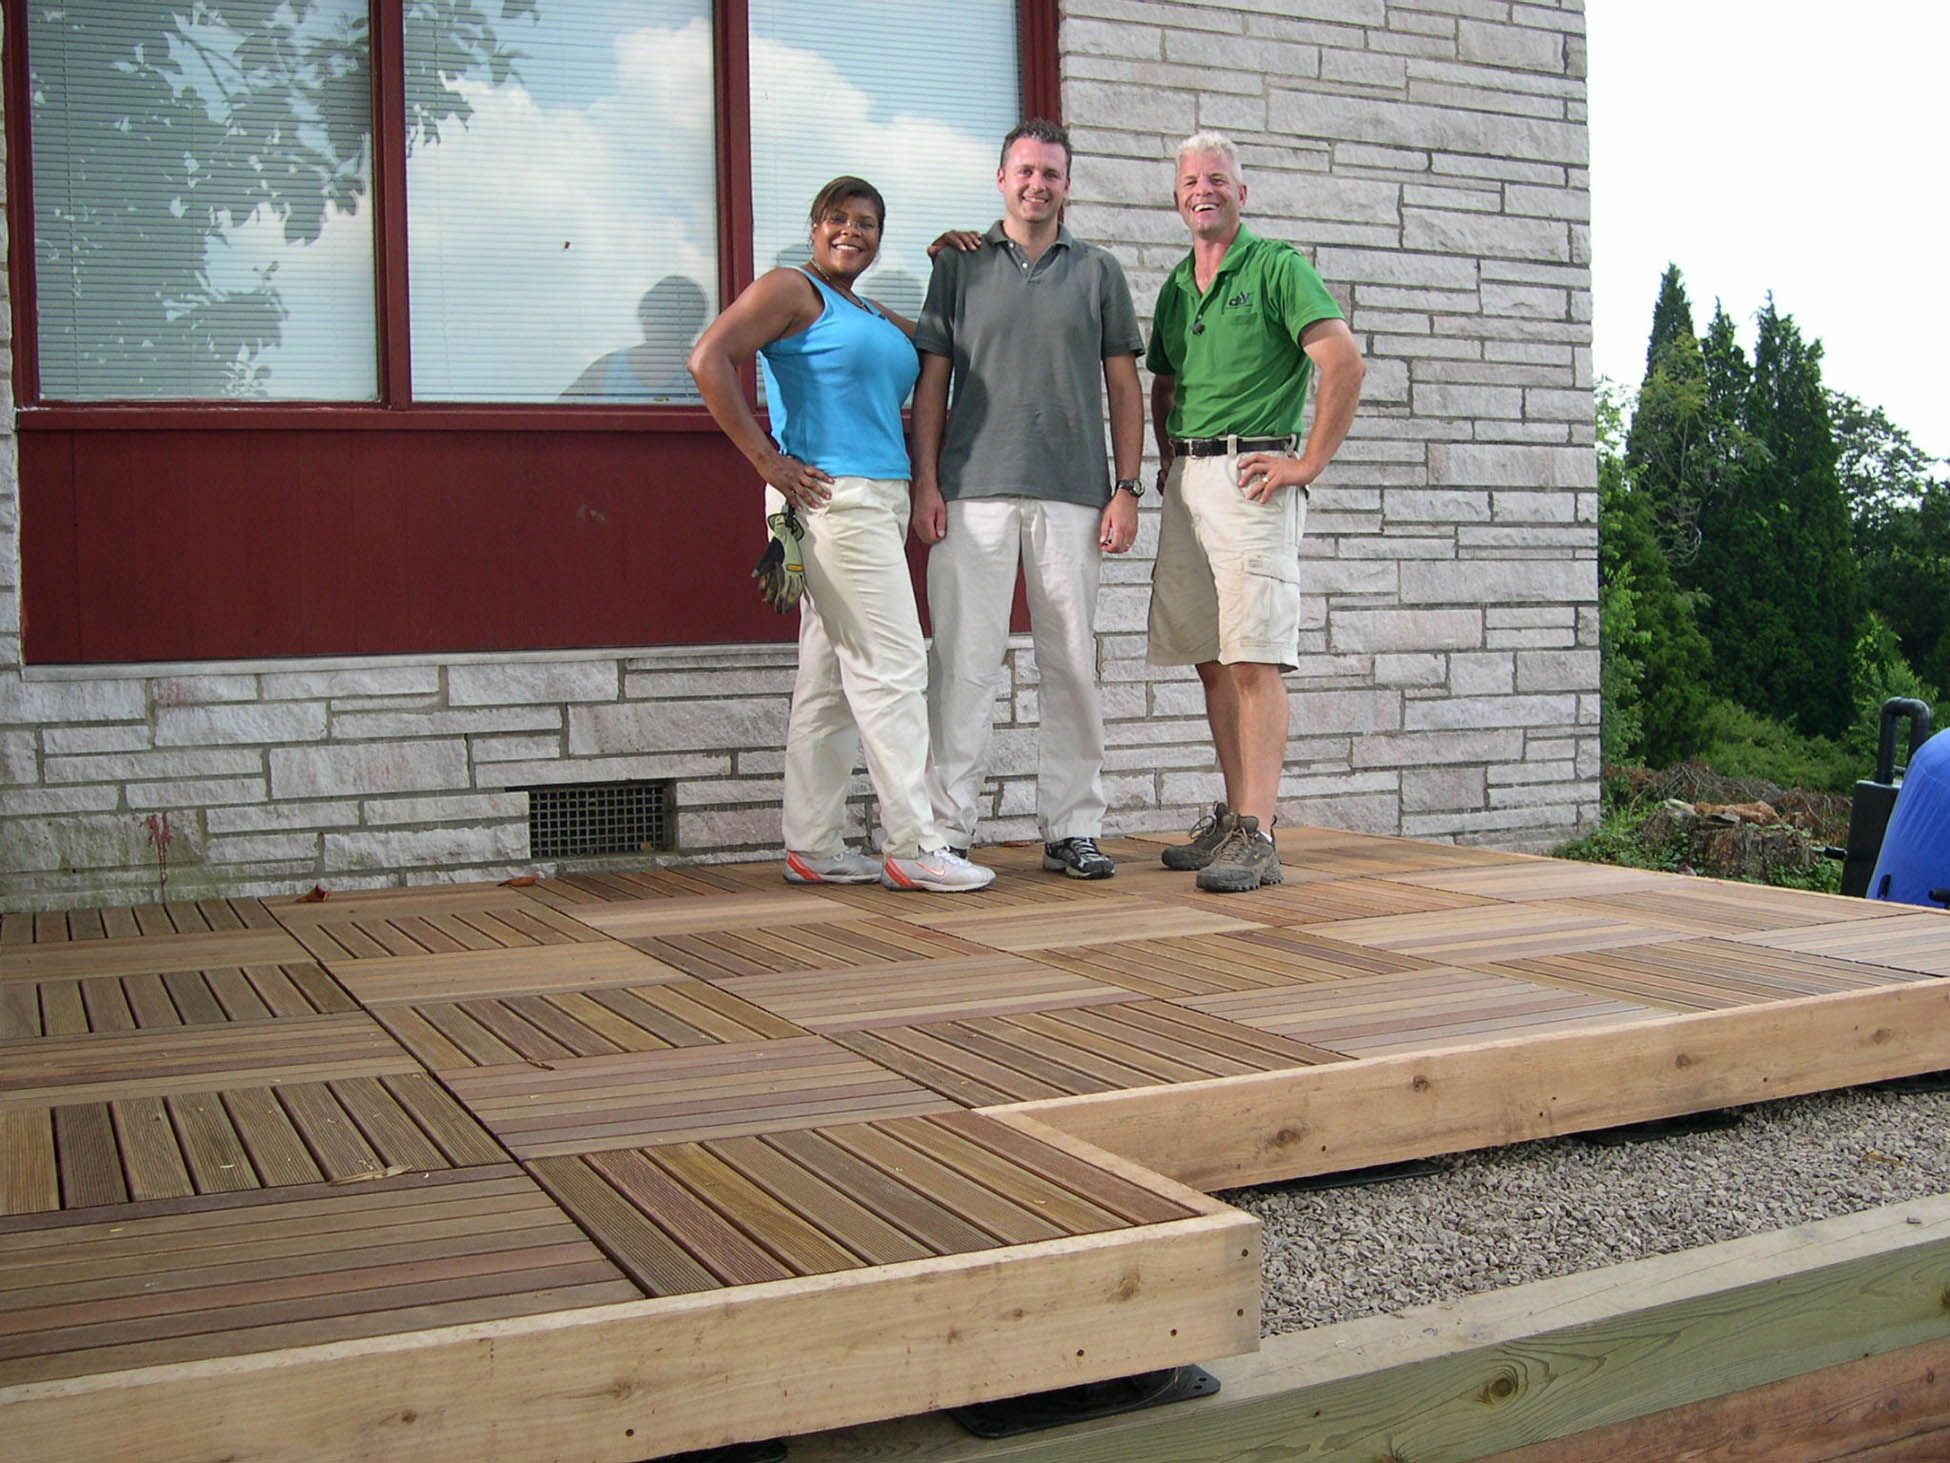 Diy Network Patio Deck Supports Pedestal System Roofdeck Ideas with proportions 1950 X 1463